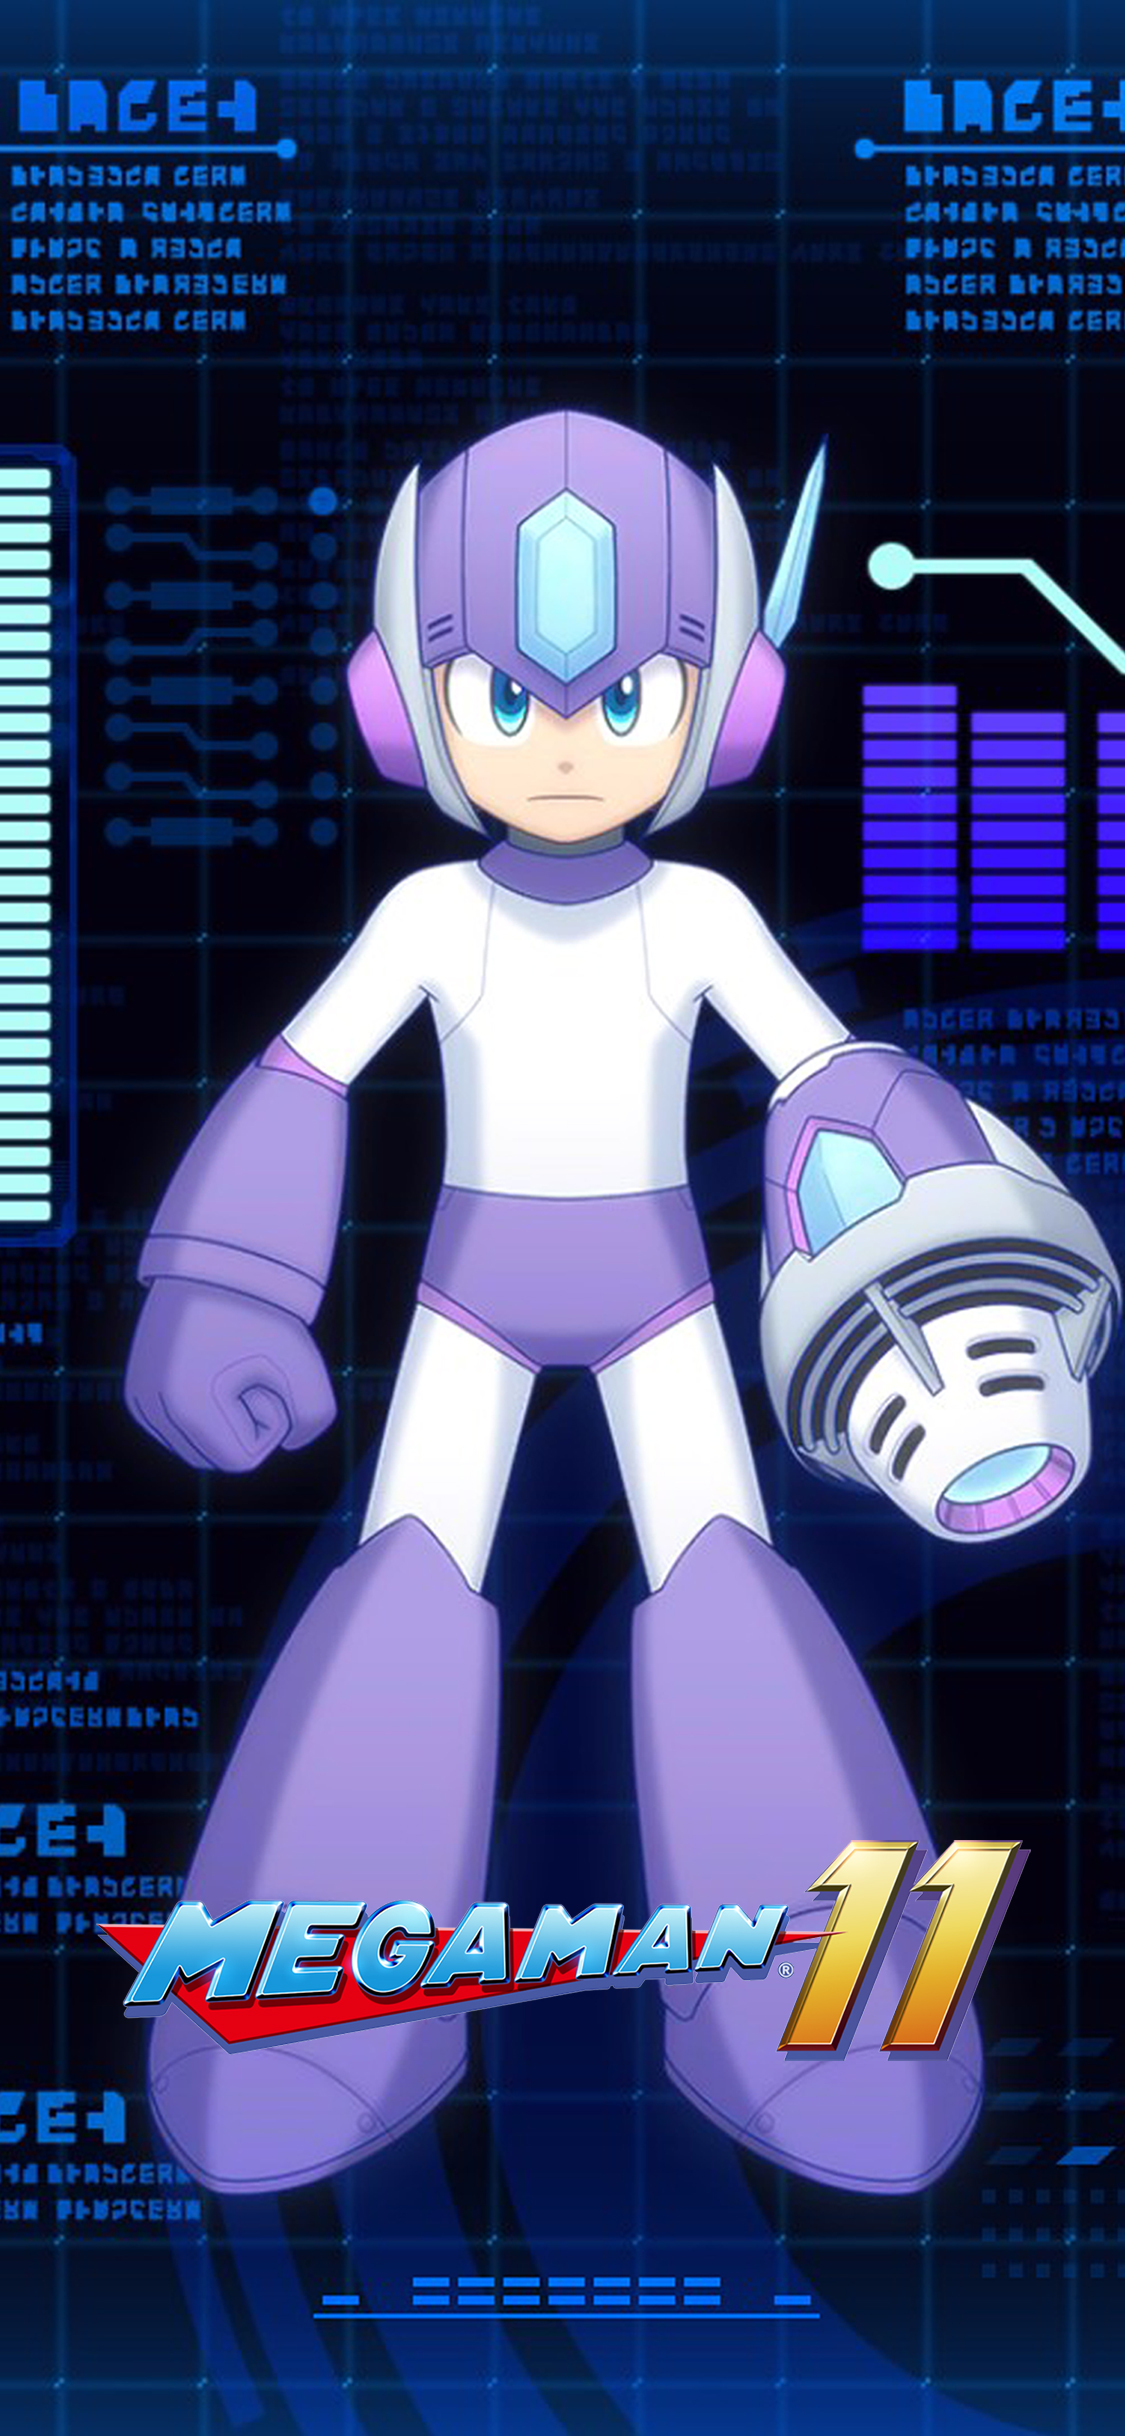 Running Wallpaper Iphone Mega Man 11 Tundra Storm Weapon Wallpaper Cat With Monocle